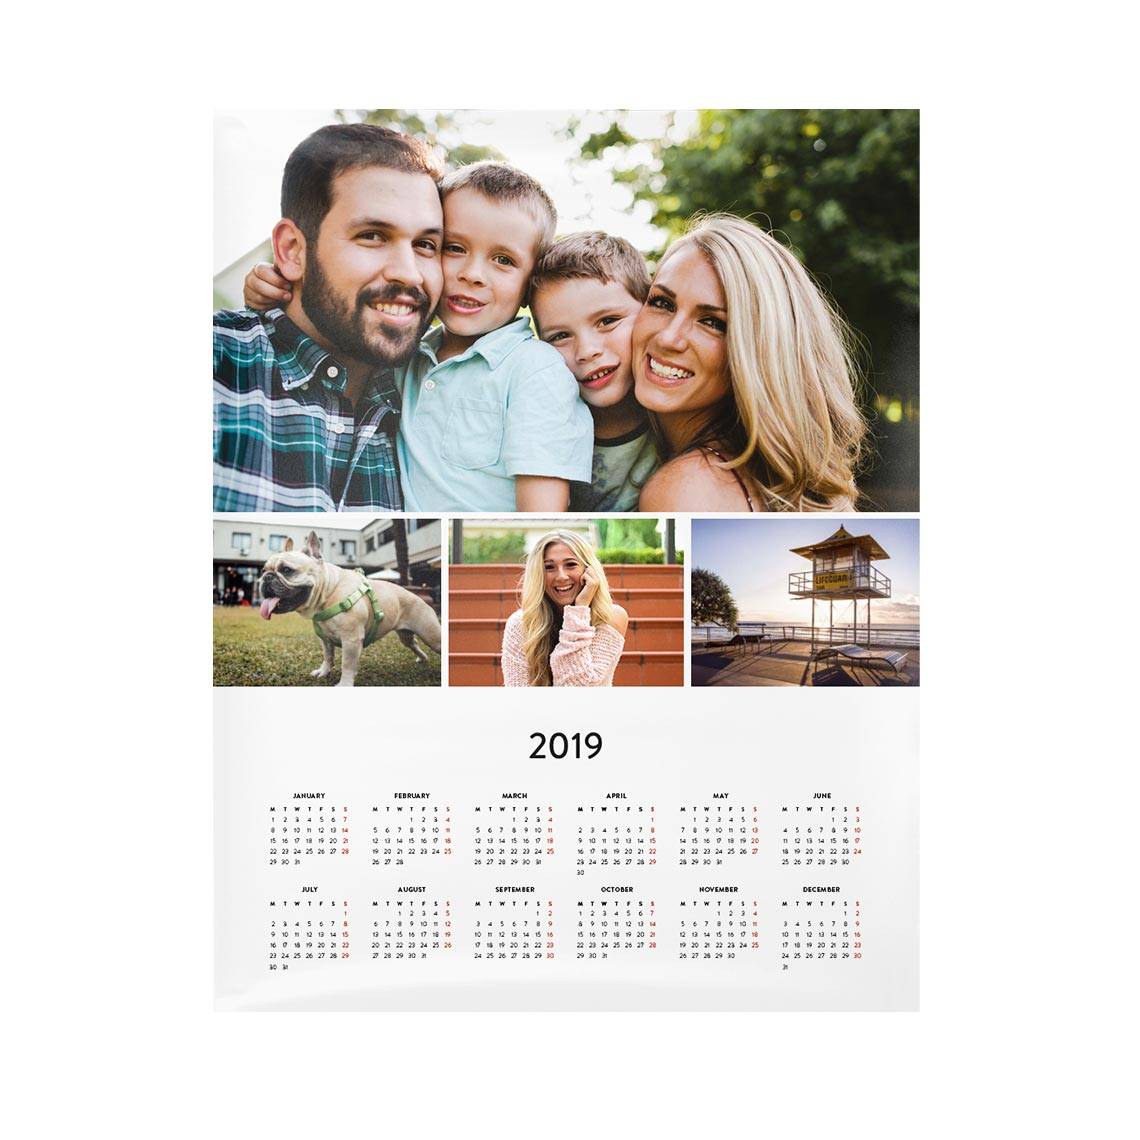 A calender with image of family.